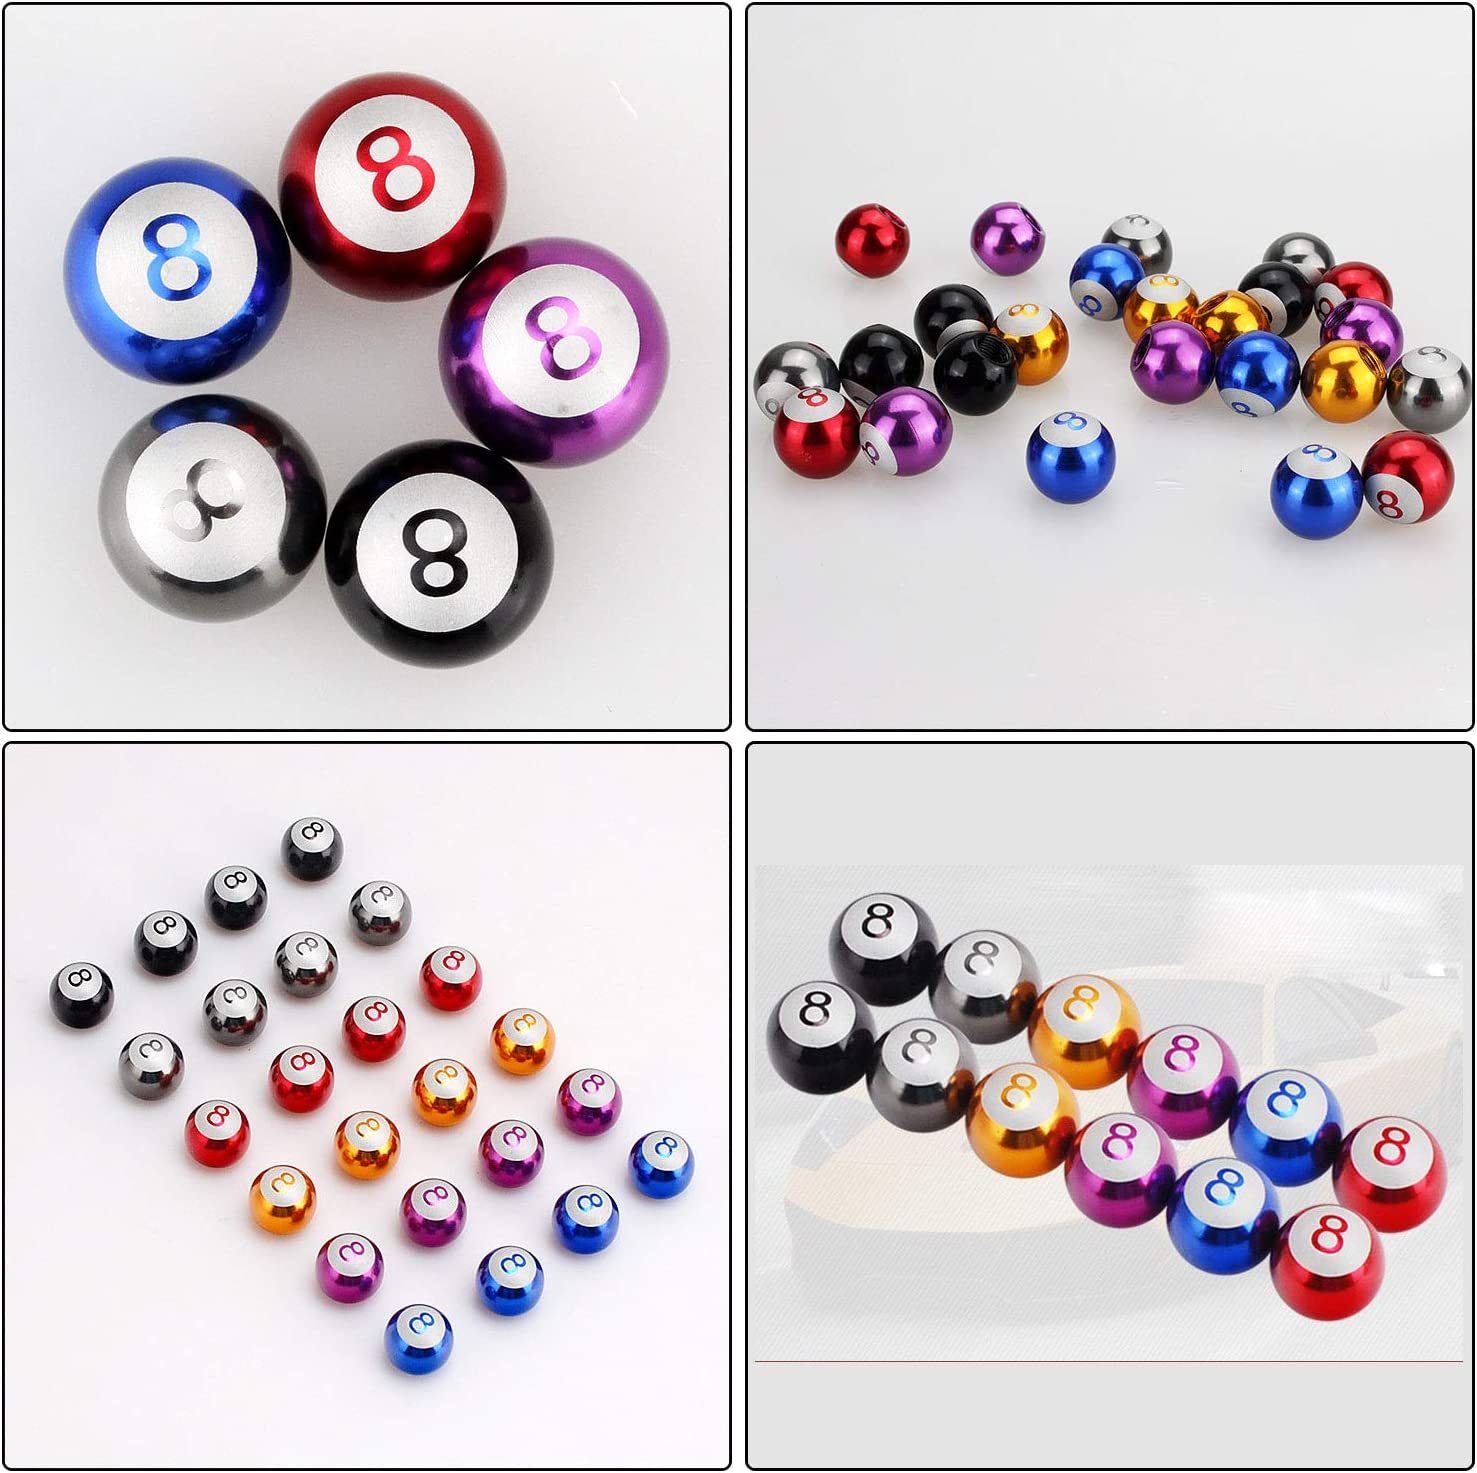 Car Tire Valve Stem Air Caps Cover for Car//Bicycle//Motorcycle Wheels Universal Steel Tire Valve Stem Caps 4pcs INCART Pool Eight Ball Billiard Black 8 Red